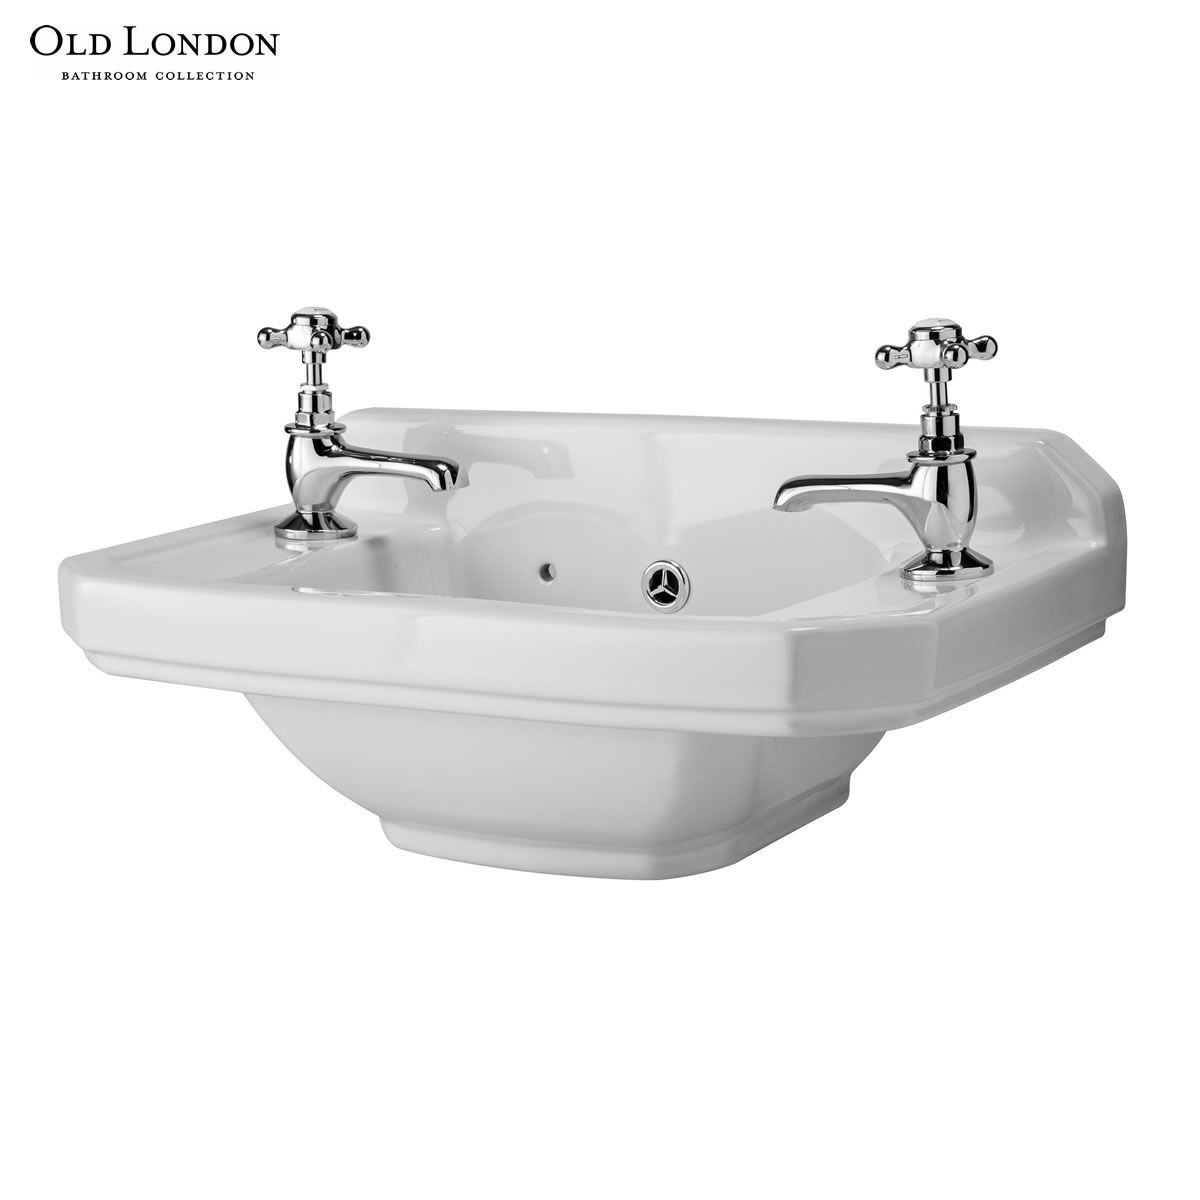 Old London Richmond 512mm Cloakroom Basin Uk Bathrooms